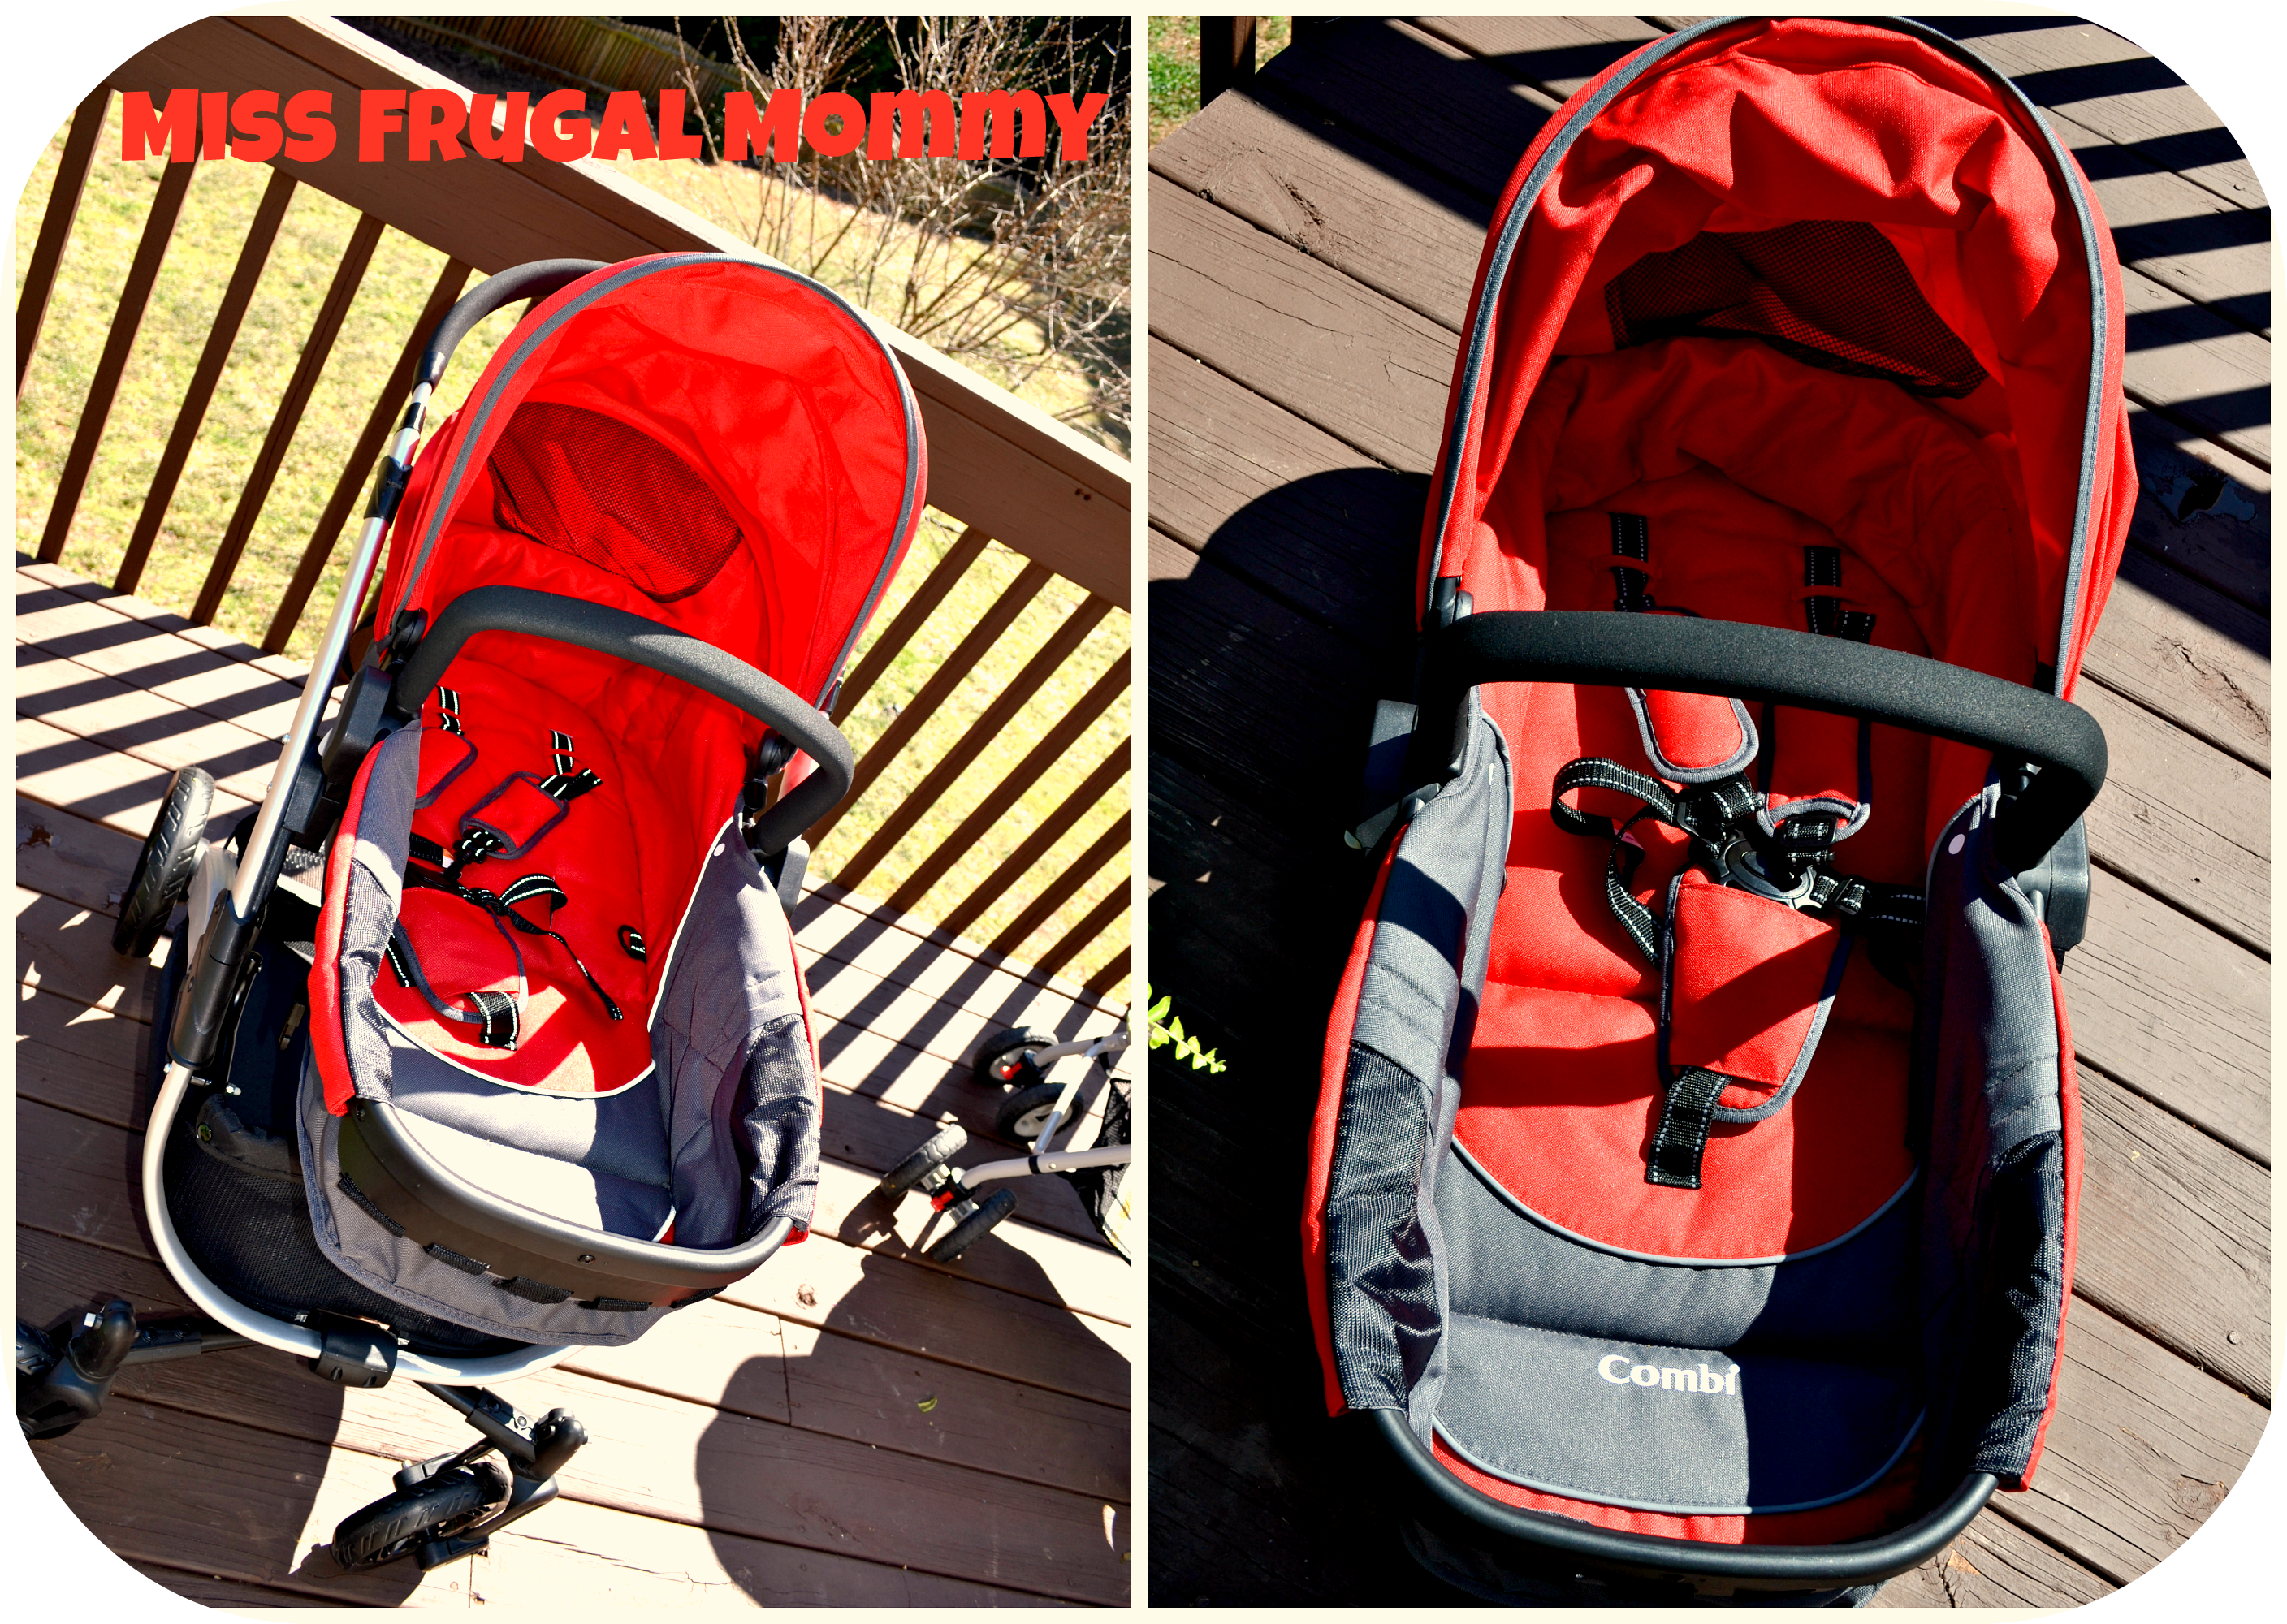 Combi Catalyst Stroller Review (Getting Ready For Baby Gift Guide)